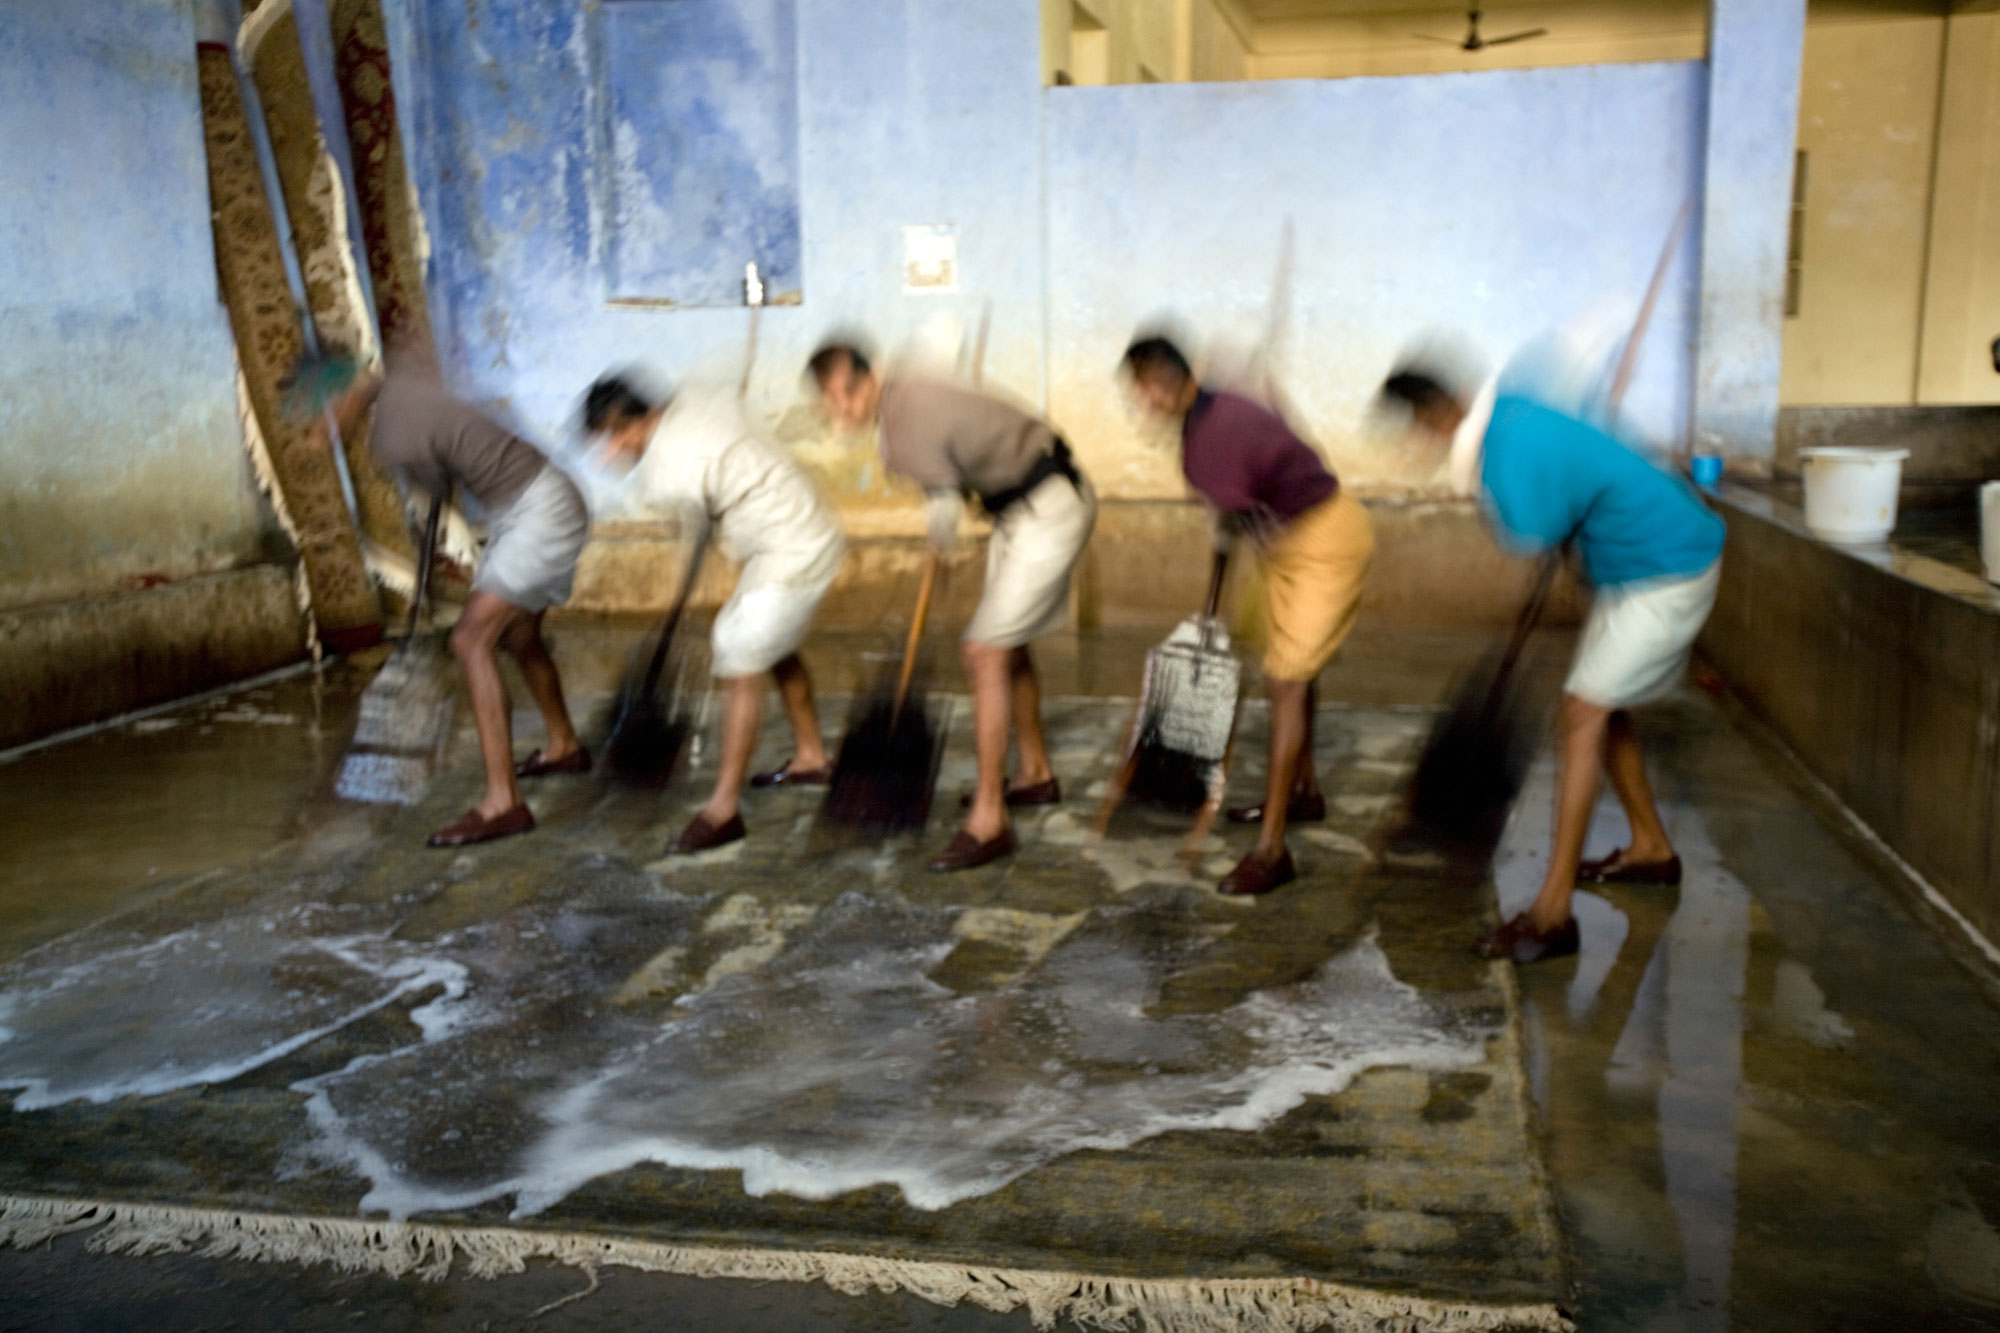 Indian men sweeping rugs